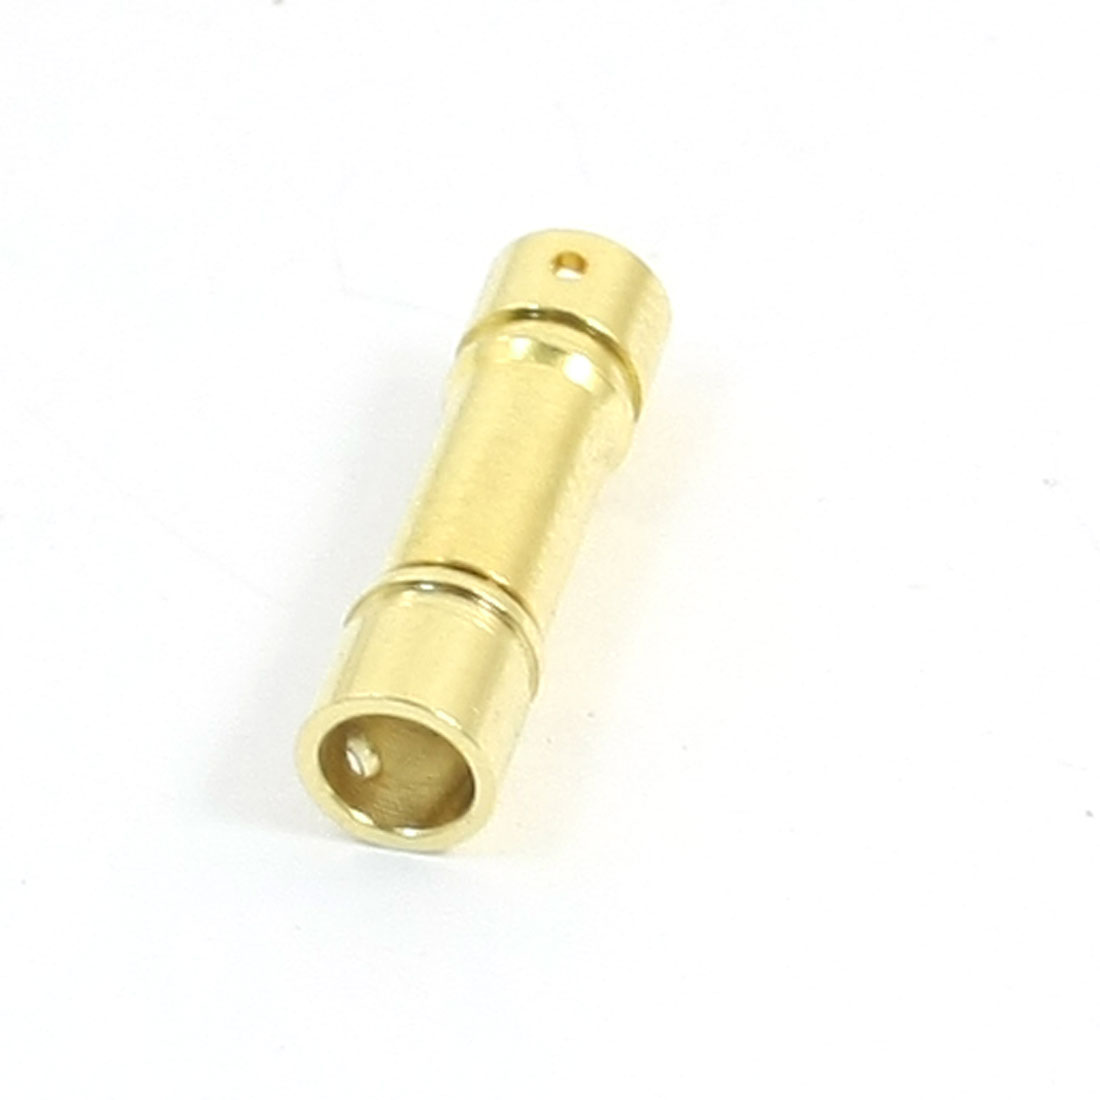 Pair RC Airplane Plane Aircraft 4mm Gold Tone Banana Male Female Plug Connector Adapter Set